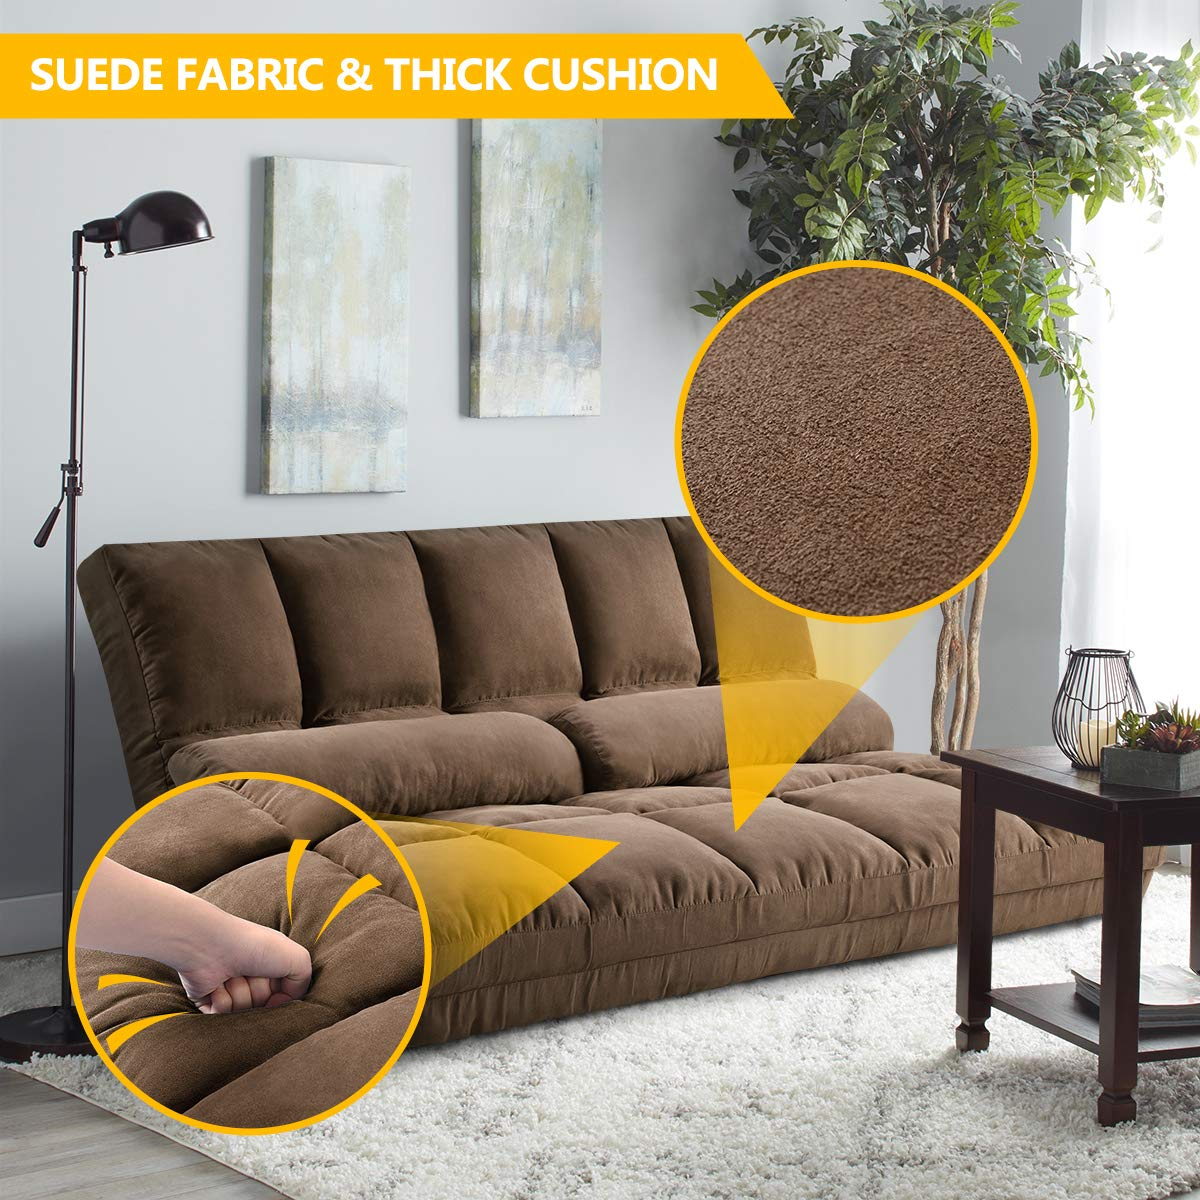 Double Chaise Lounge Sofa Chair Floor Couch with Two Pillows Brown